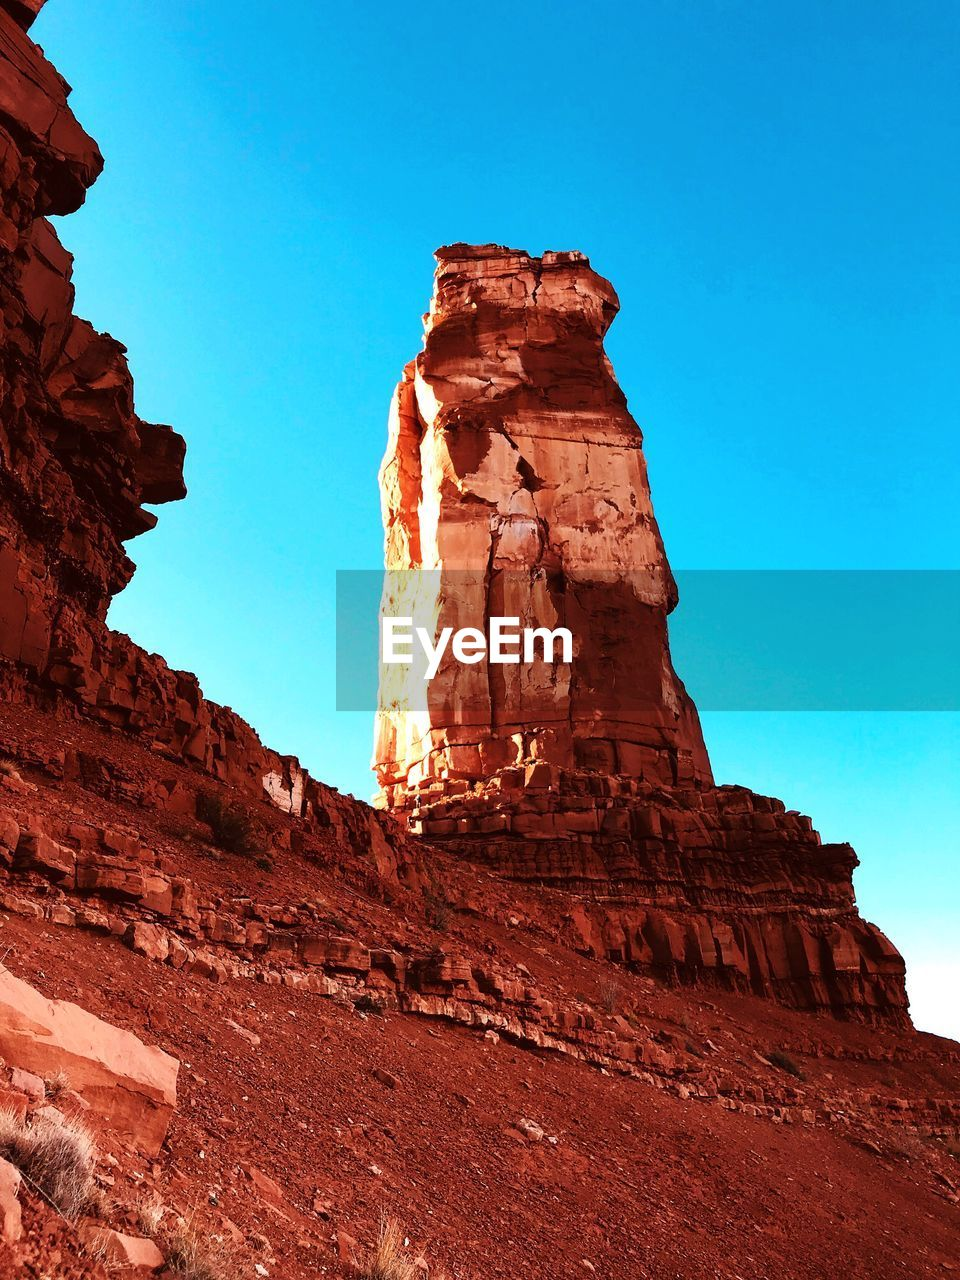 rock formation, geology, rock - object, nature, physical geography, low angle view, travel destinations, tourism, beauty in nature, no people, day, clear sky, outdoors, red, sky